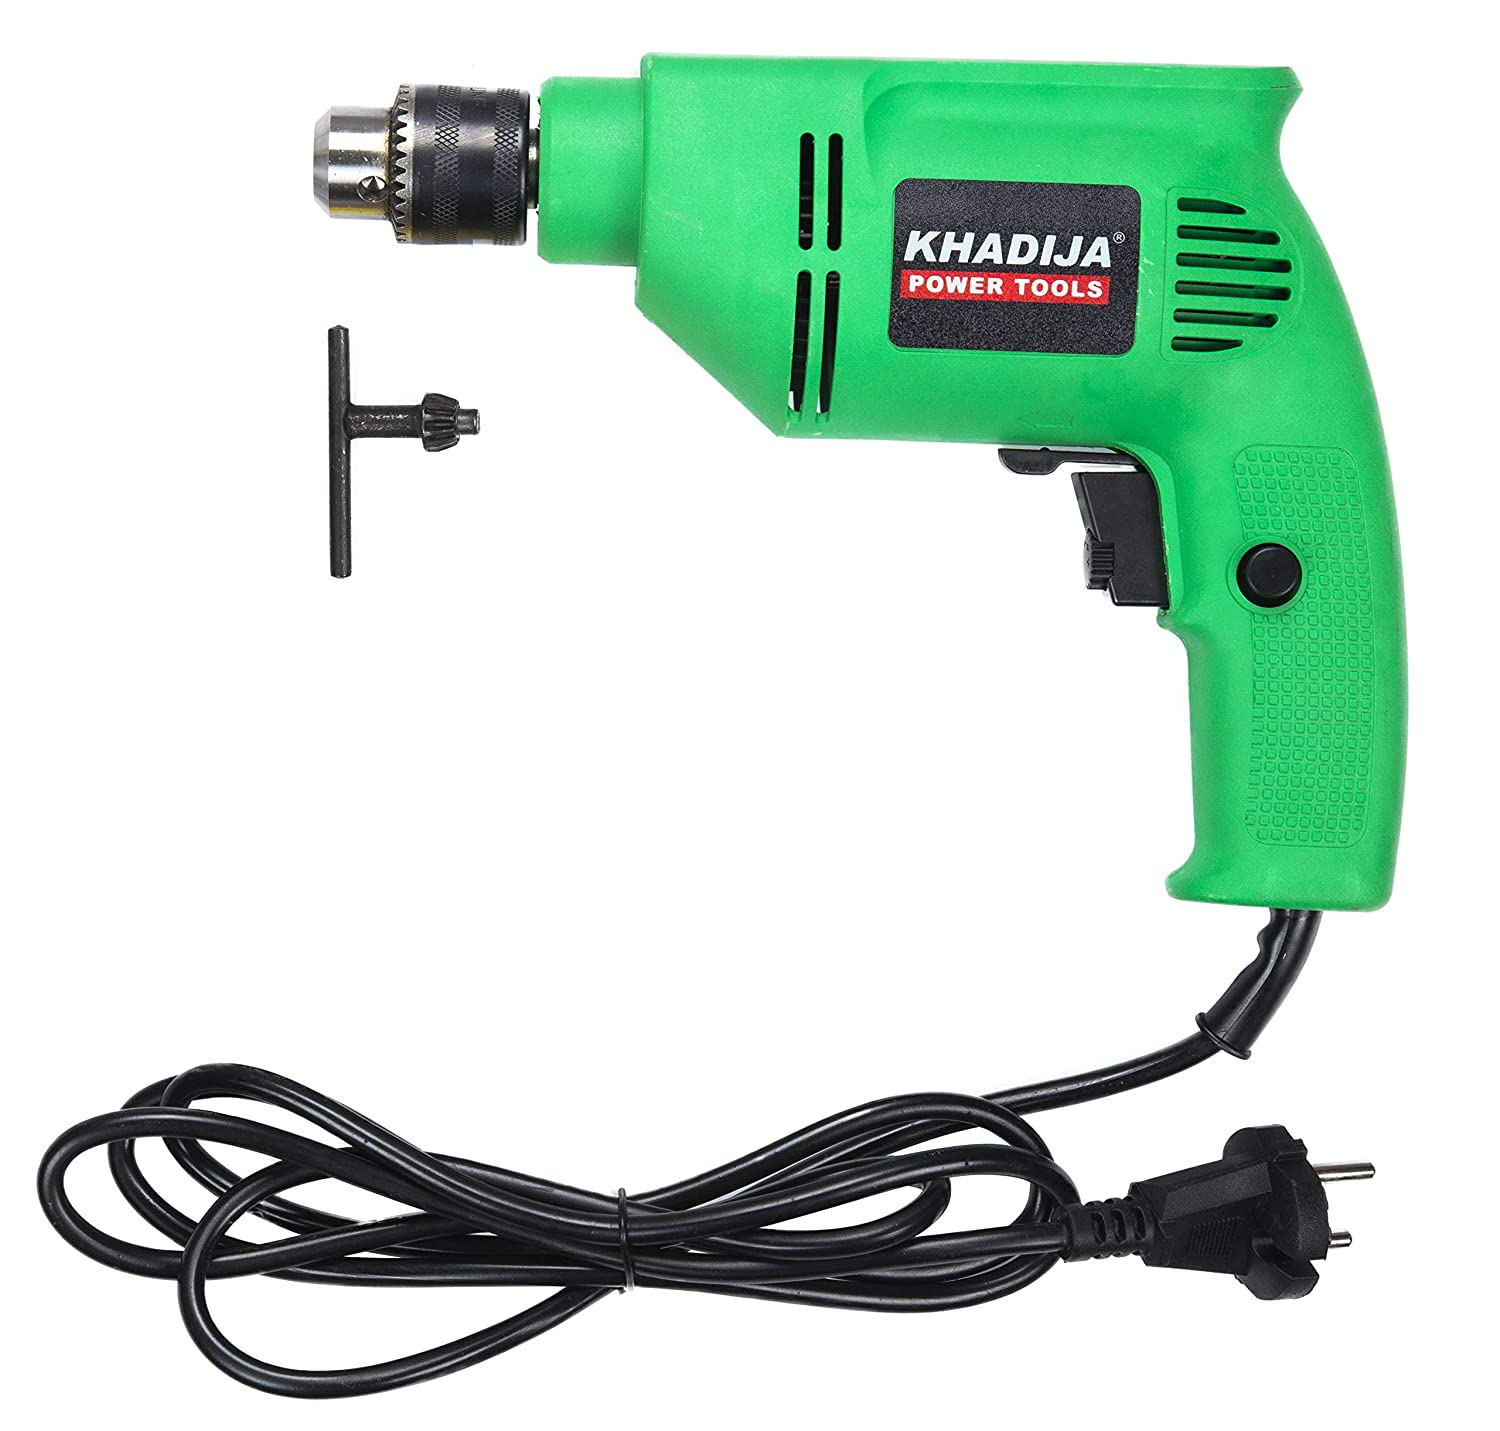 KHADIJA HI-MAX 400W Reverse Forward Rotation Drill Machine with Speed Regulator (Multicolour)